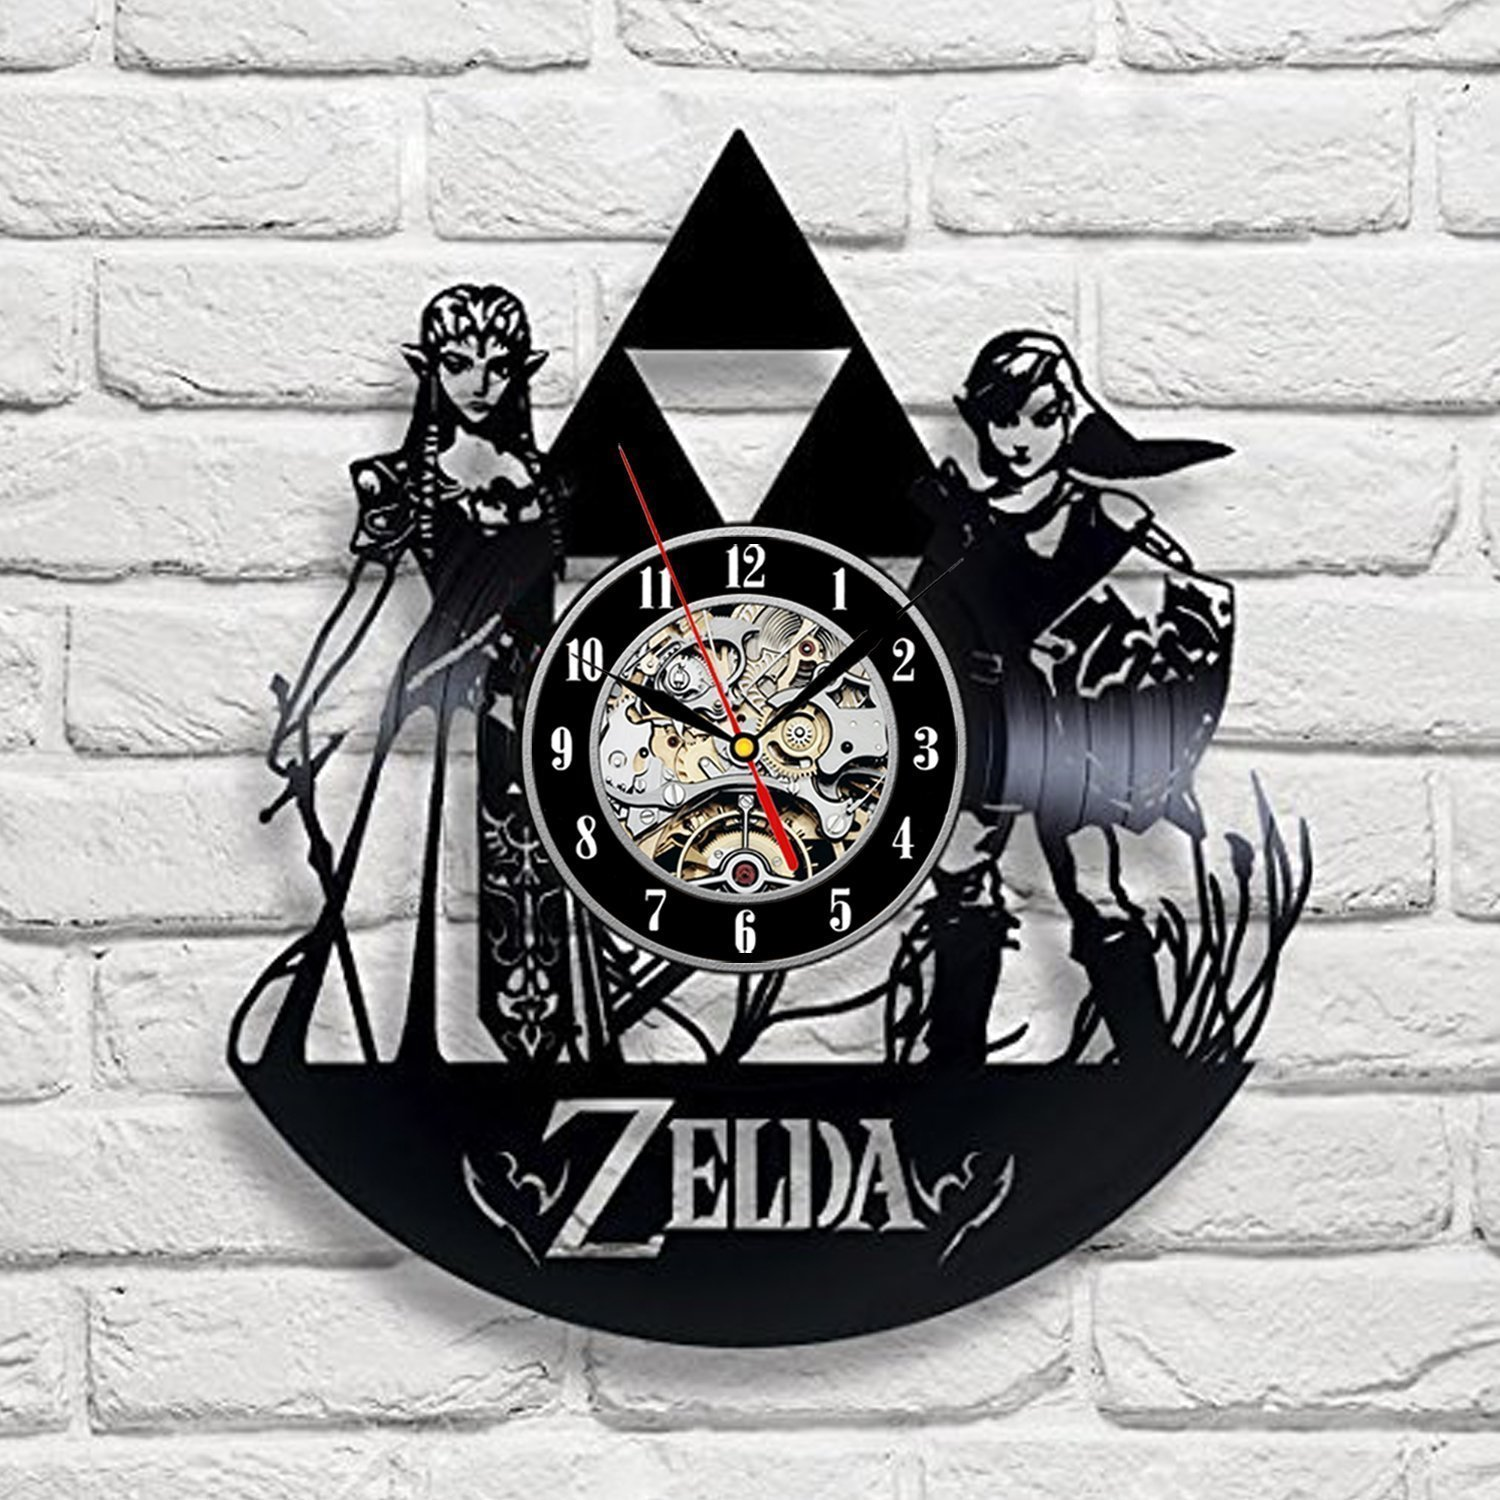 Shop amazon wall clocks zelda art vinyl wall clock gift room modern home record vintage decoration amipublicfo Gallery